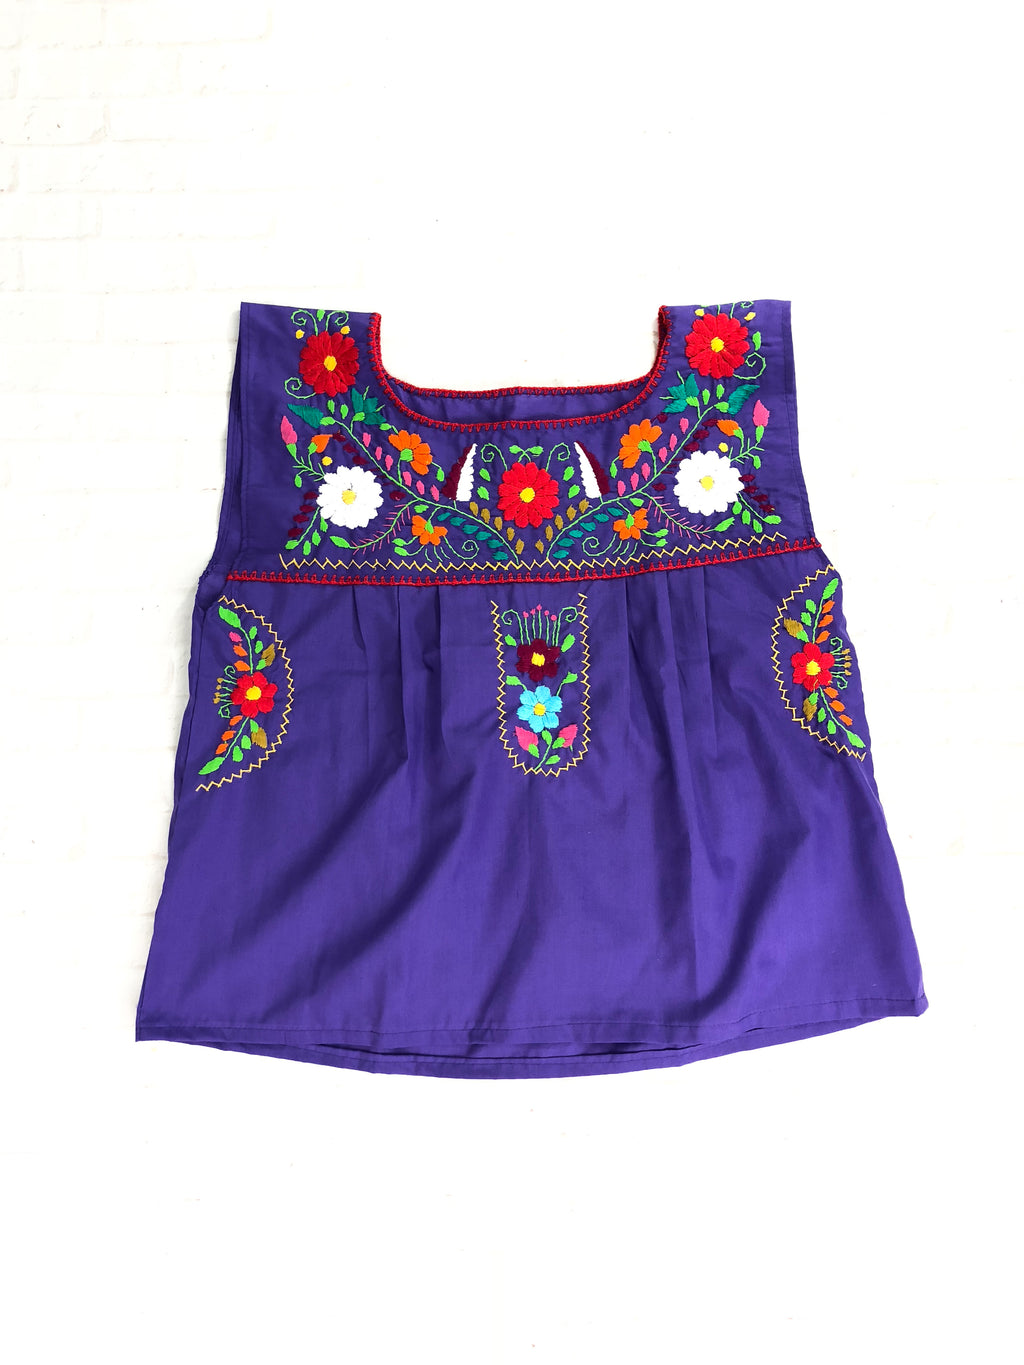 Embroidered Mexican Top (no sleeves)